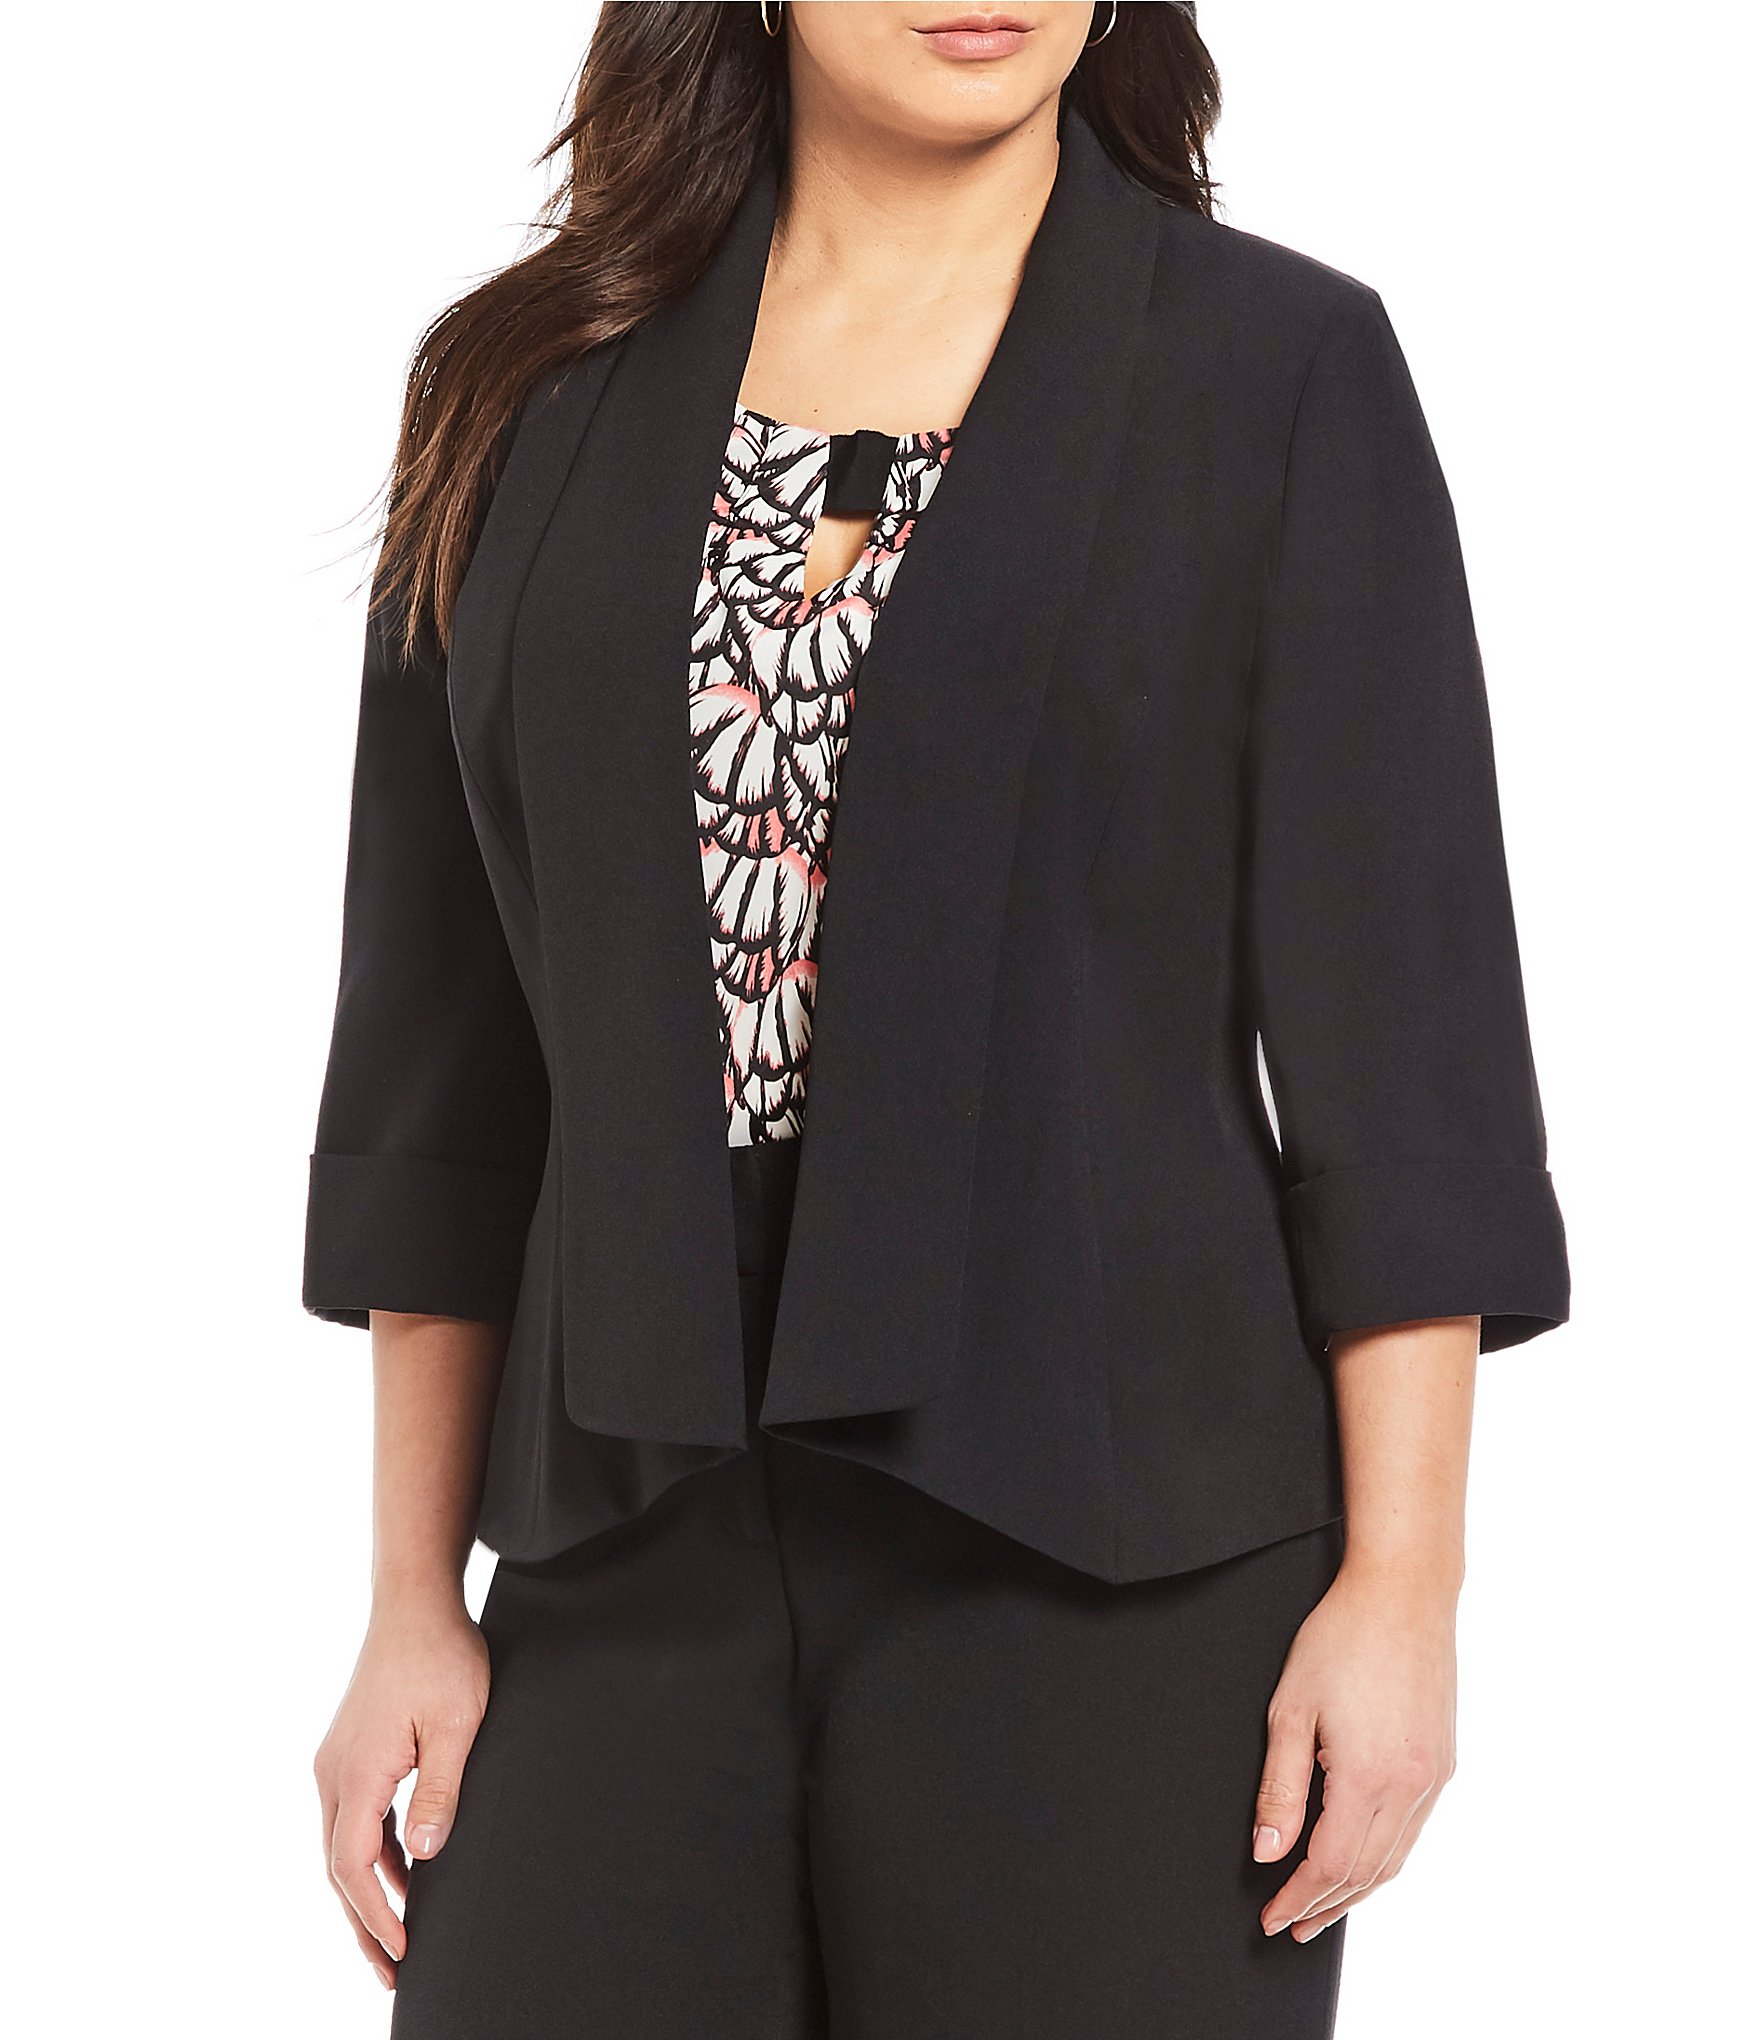 aee9a5a4114 Plus-Size Suit Jackets